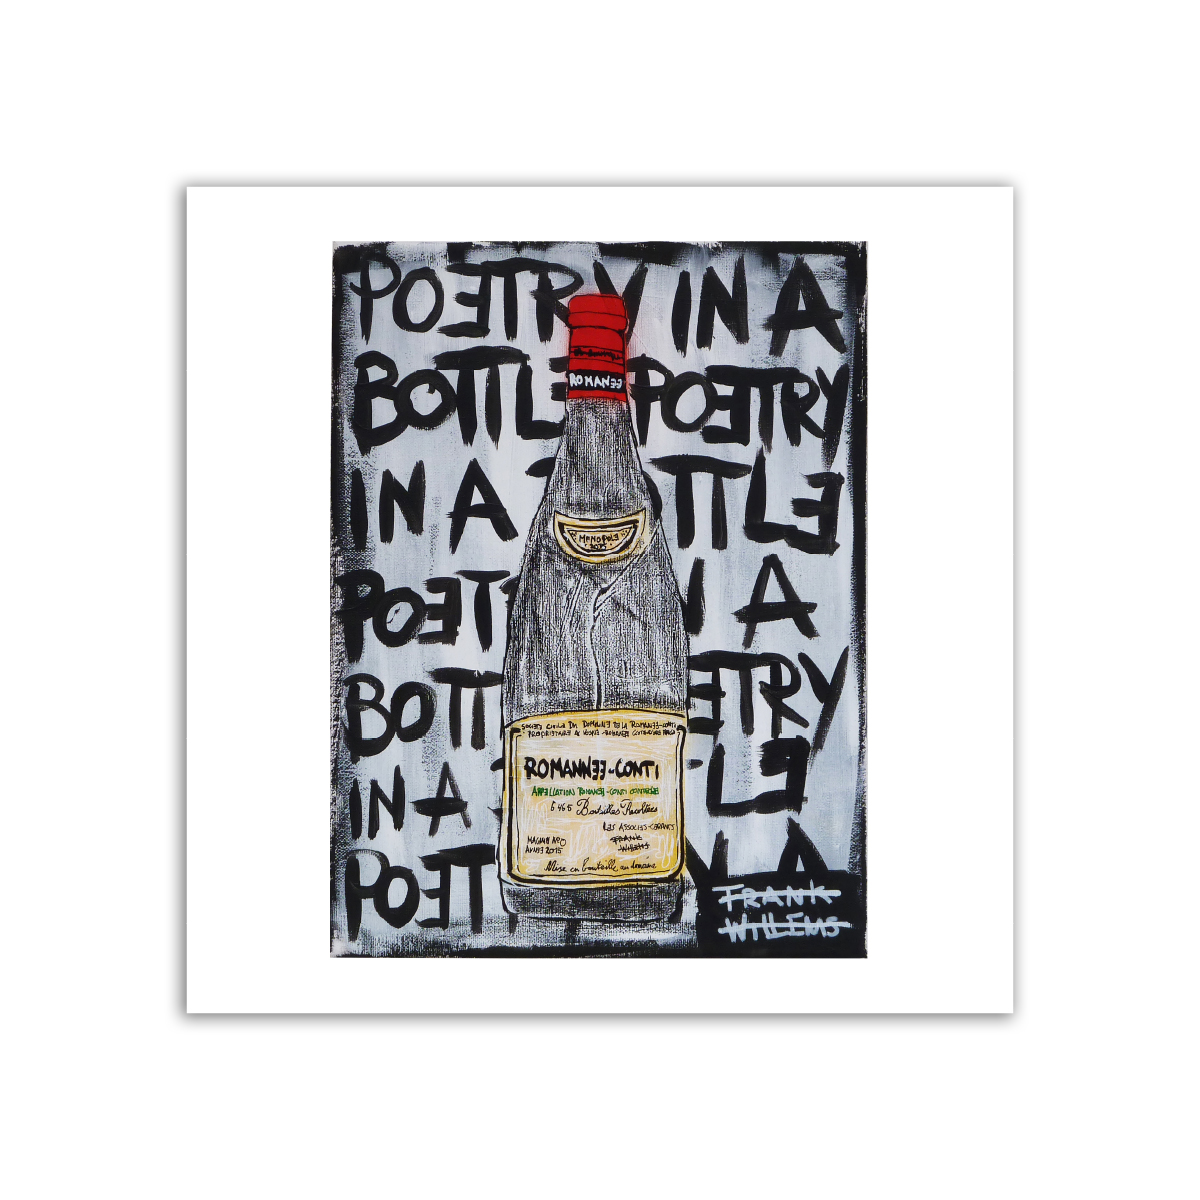 Limited prints - ROMANEE-CONTI - POETRY IN A BOTTLE - Frank Willems